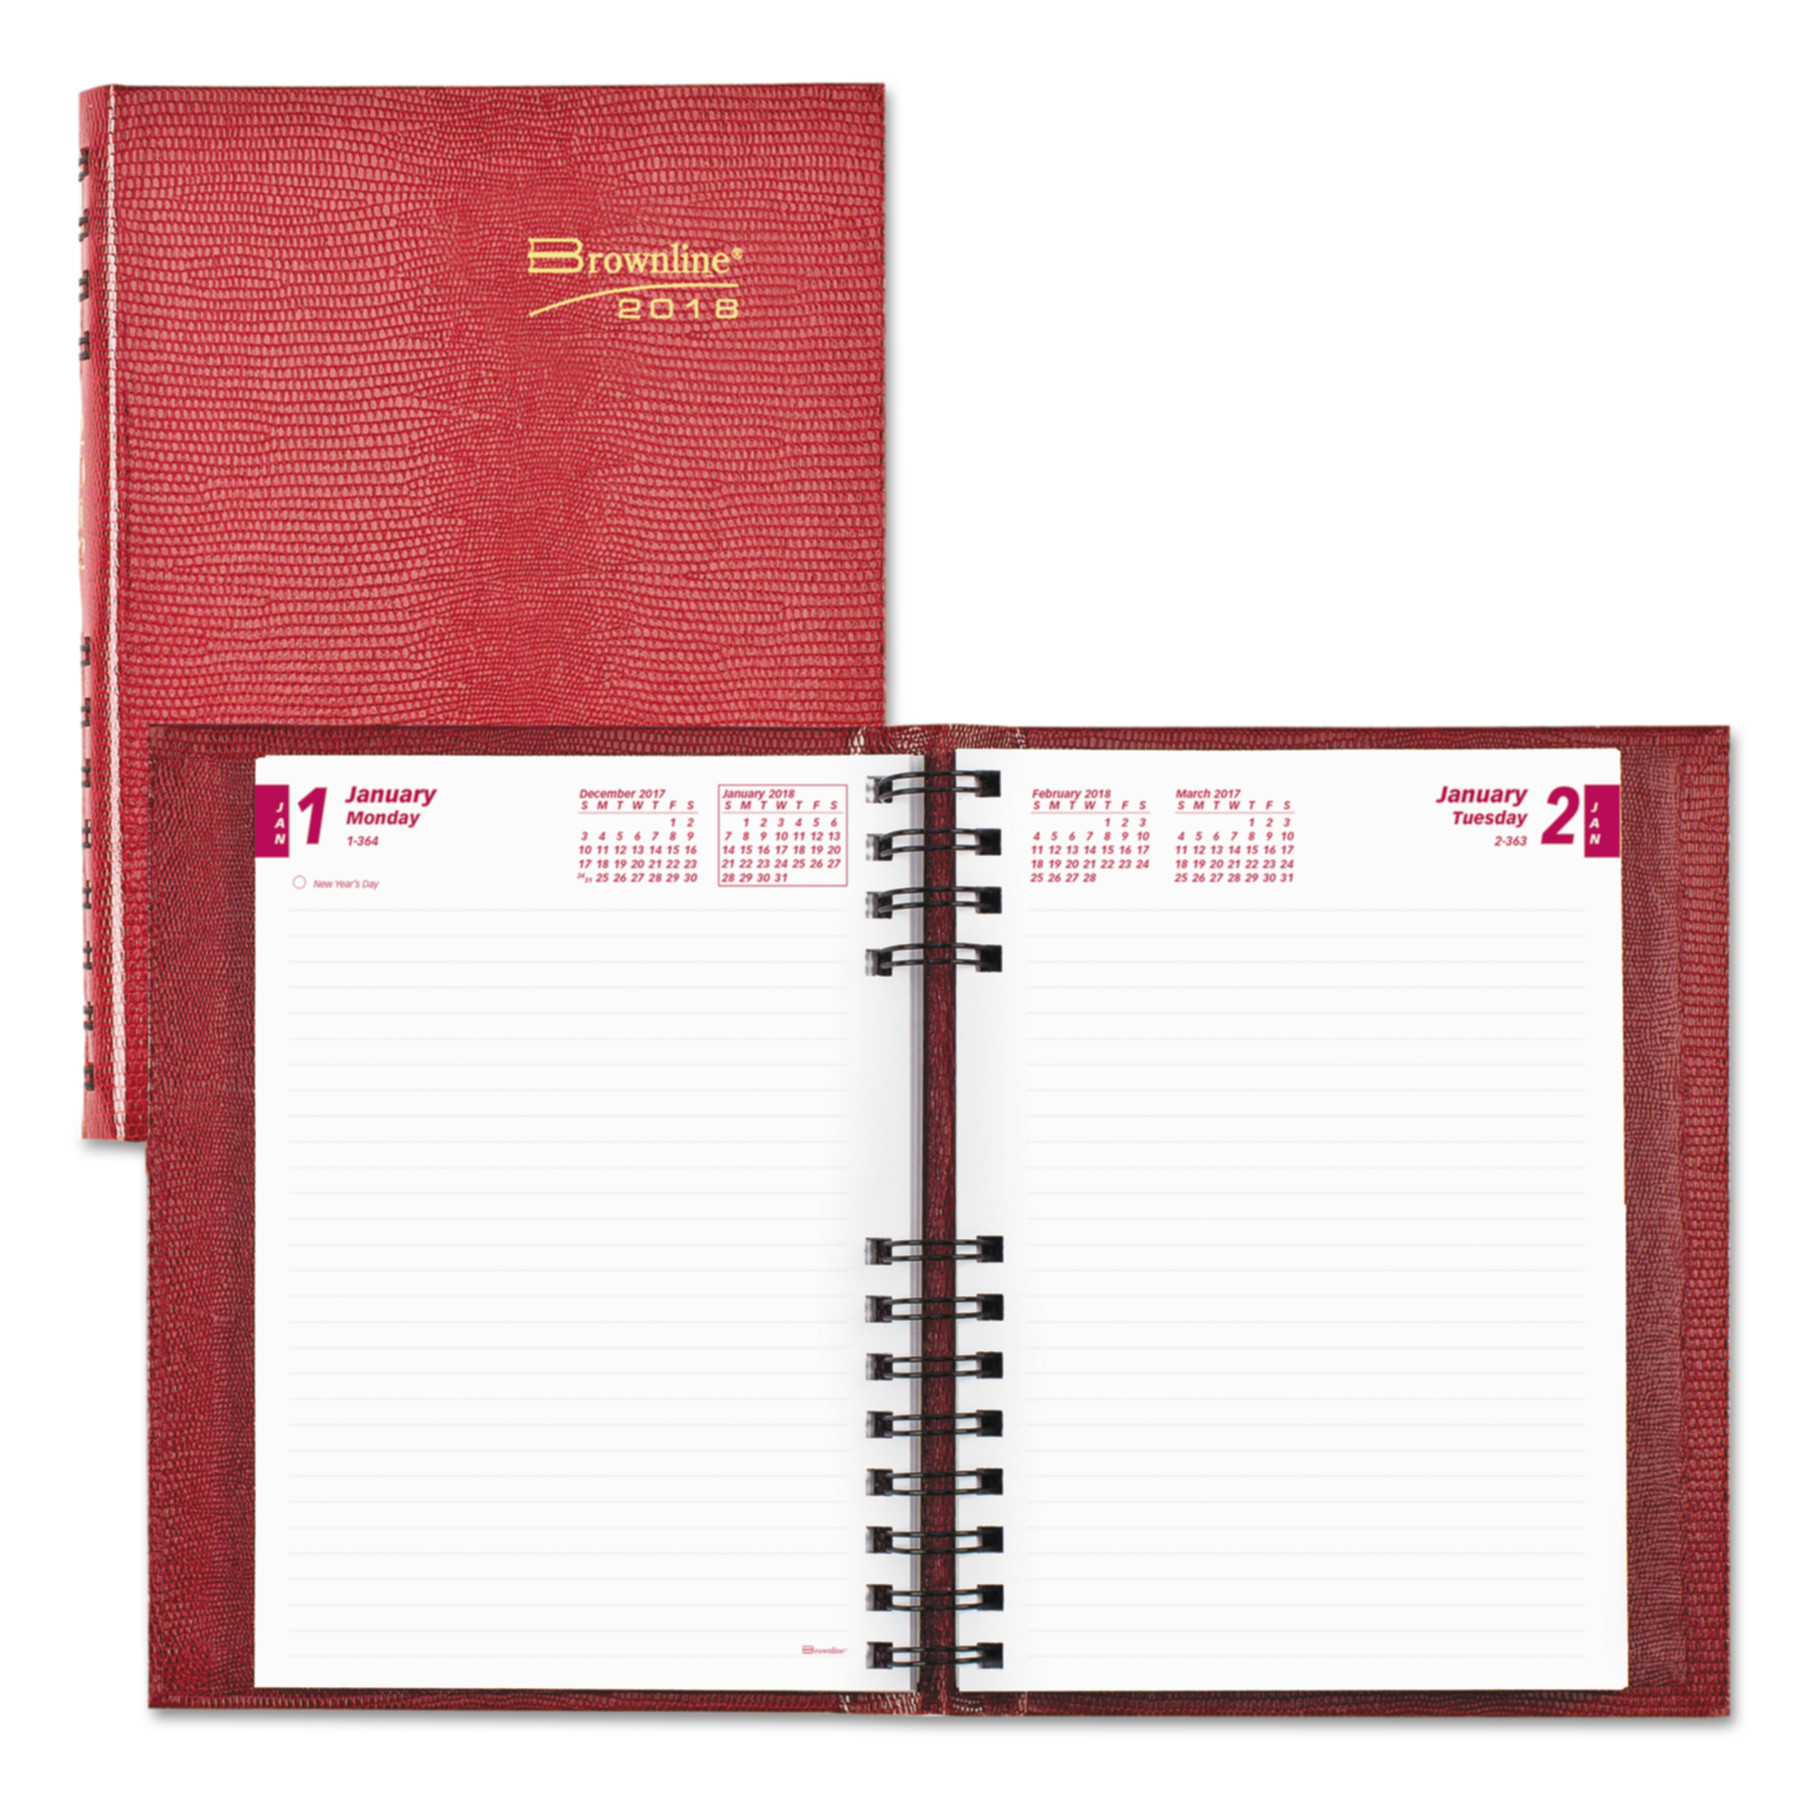 Brownline CoilPro Daily Planner, Ruled 1 Day/Page, 8 1/4 x 5 3/4, Red, 2018